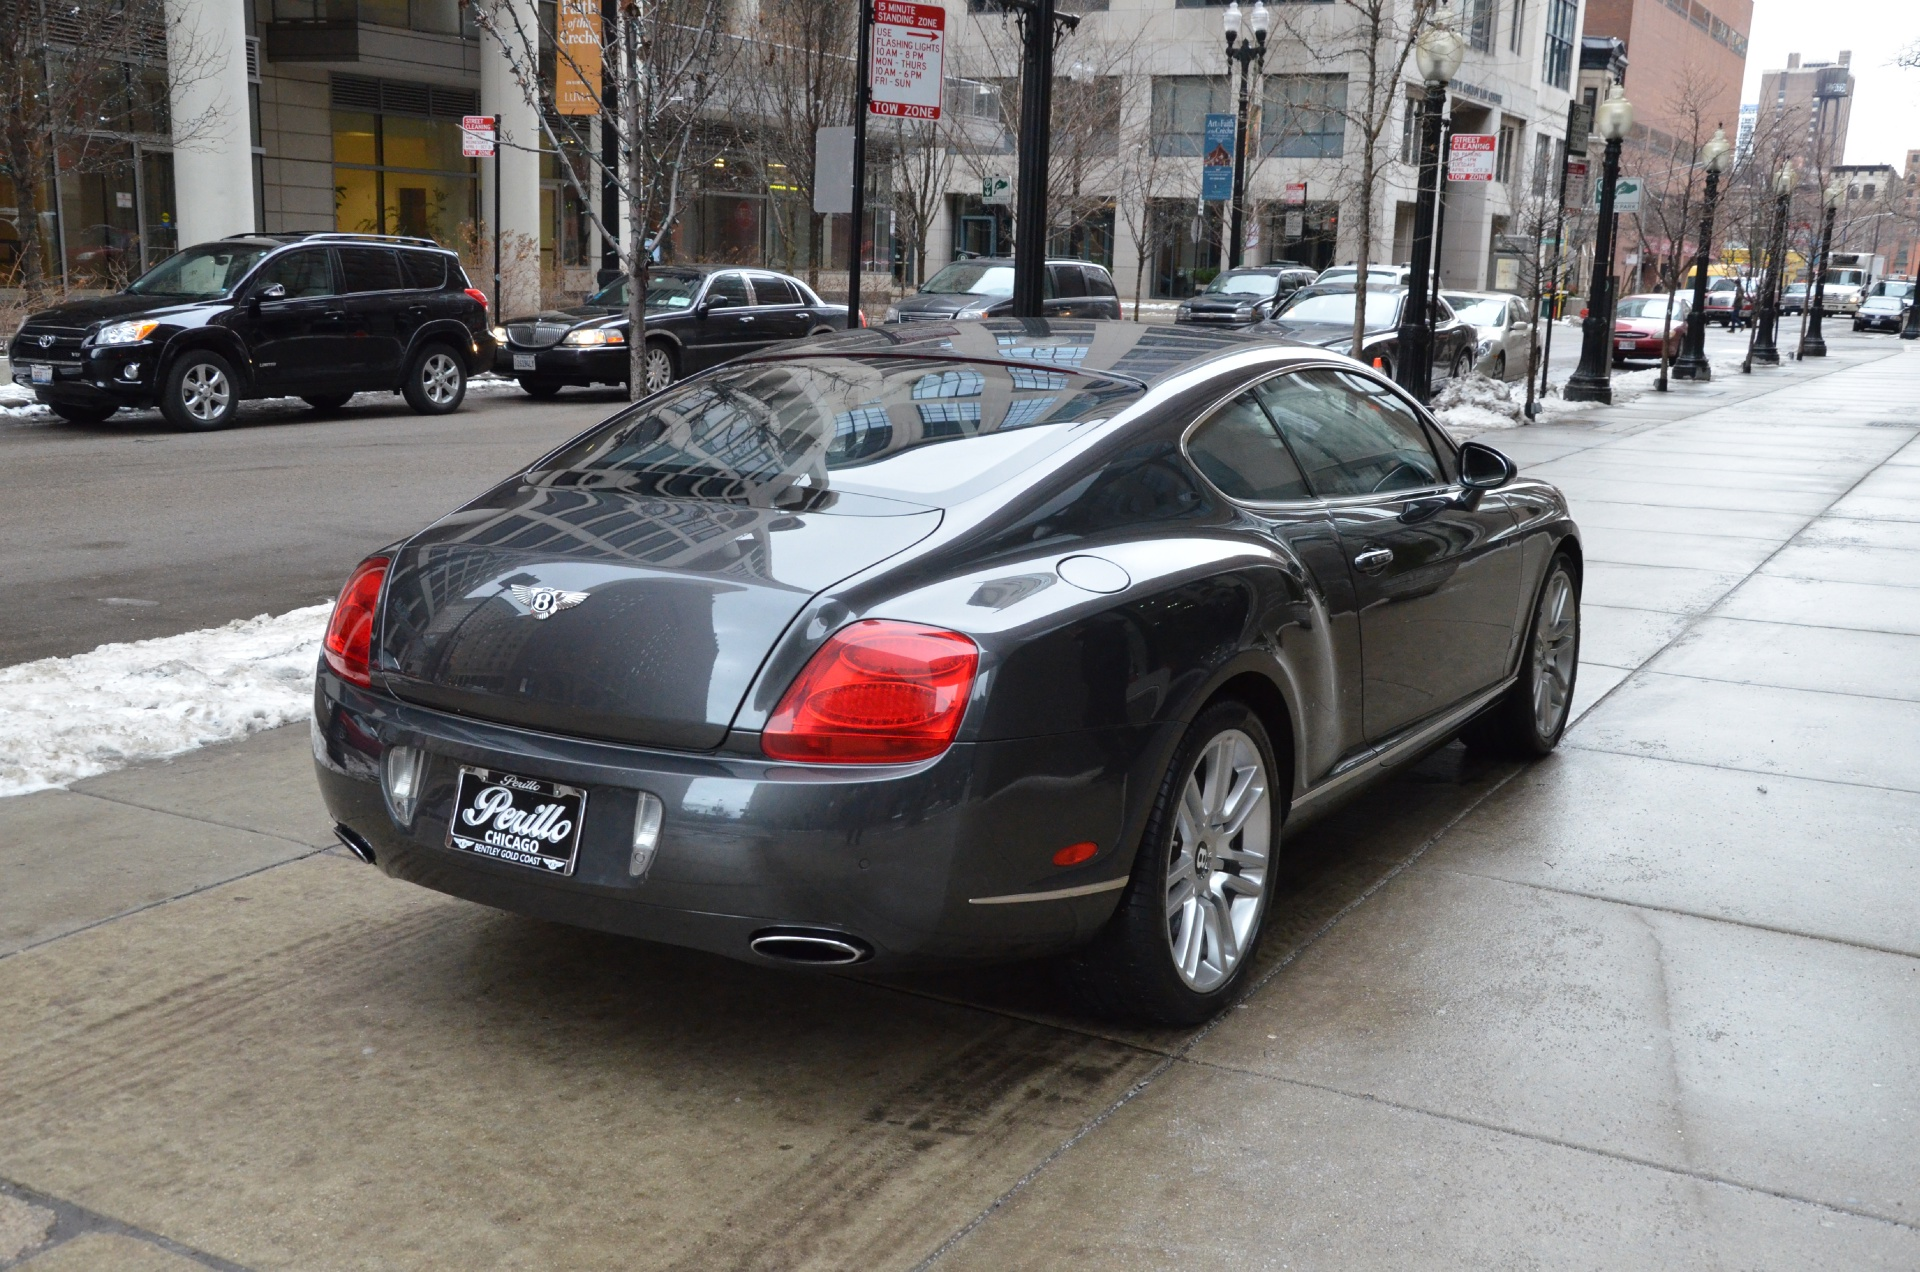 r sale review in bentley front continental view more motion quarter show news for michigan three